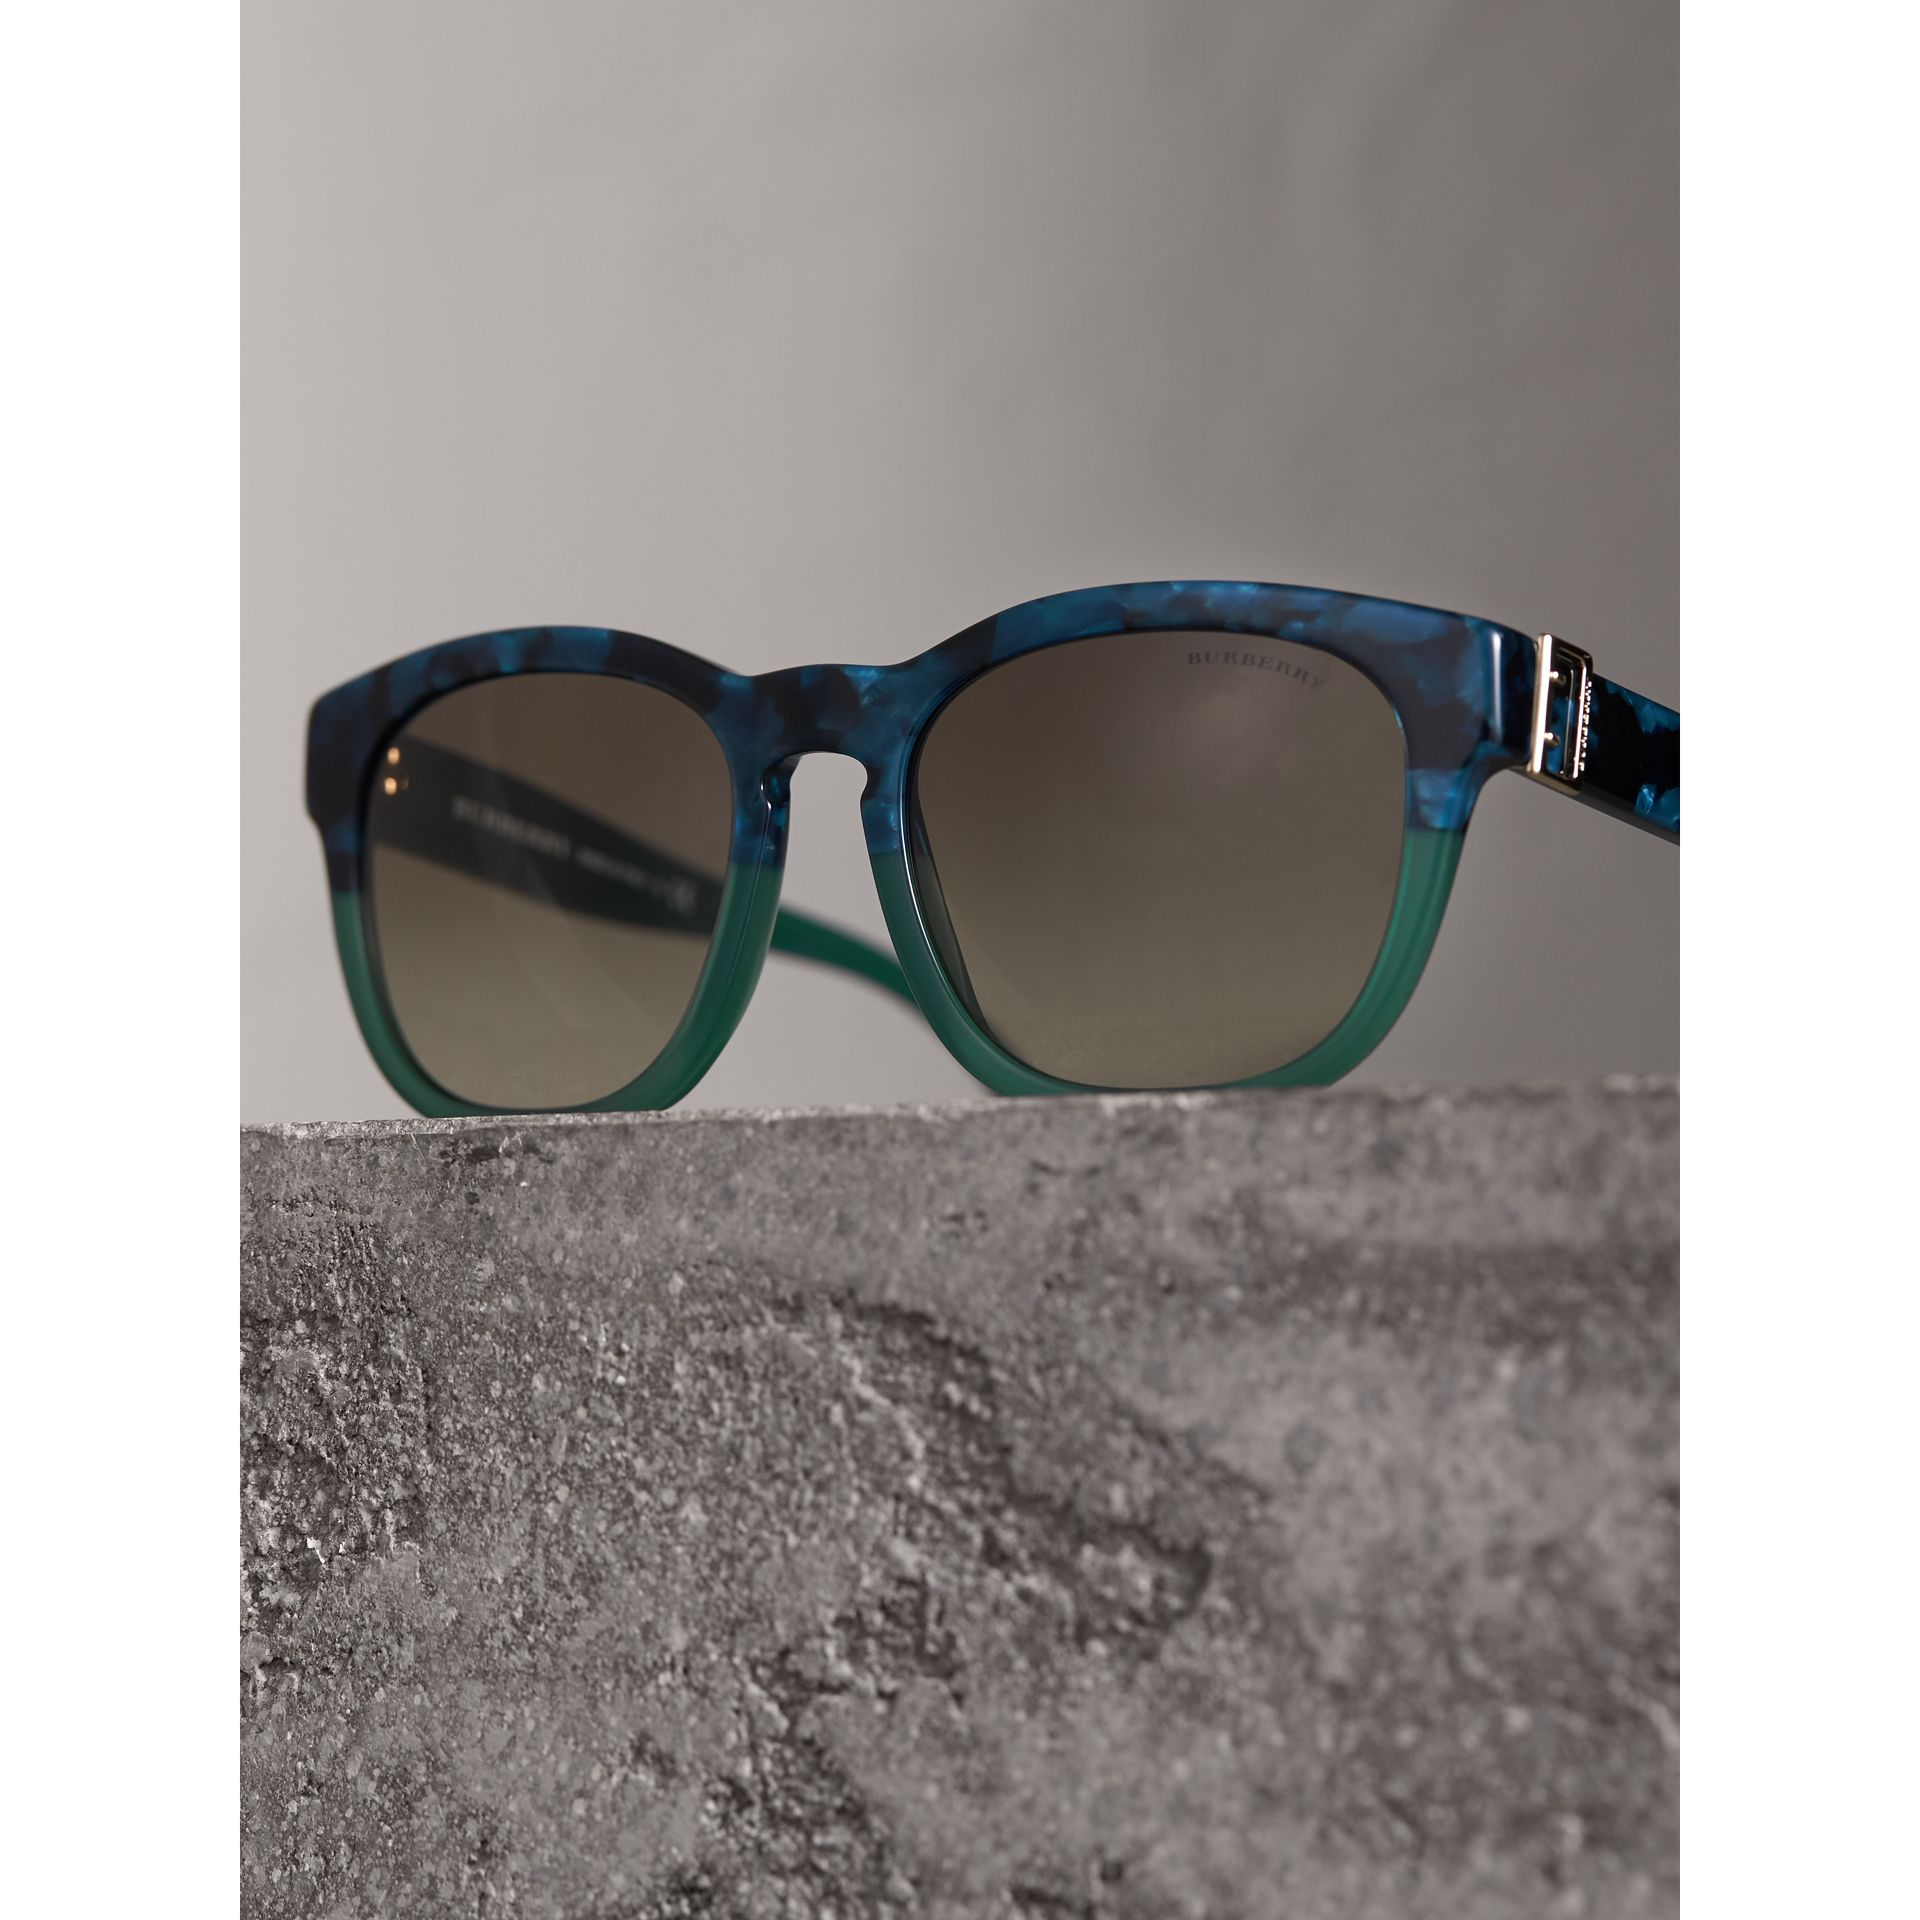 Buckle Detail Square Frame Sunglasses in Blue - Women | Burberry United Kingdom - gallery image 2